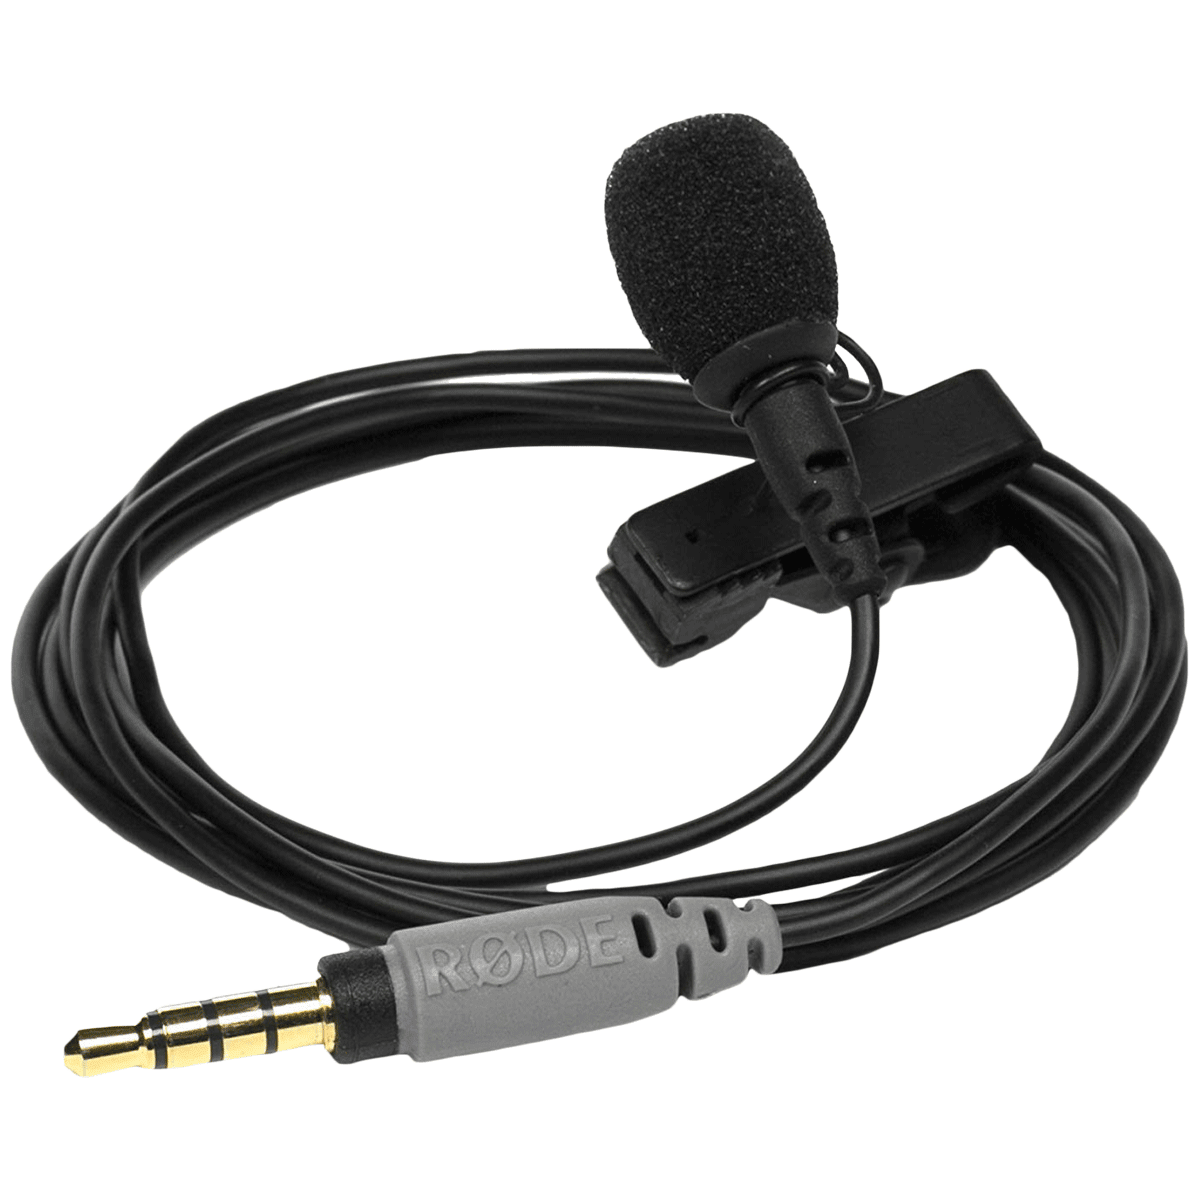 Rode Hanging Wired Lavalier Microphone (Omni Directional Pickup Pattern, SmartLav+, Black)